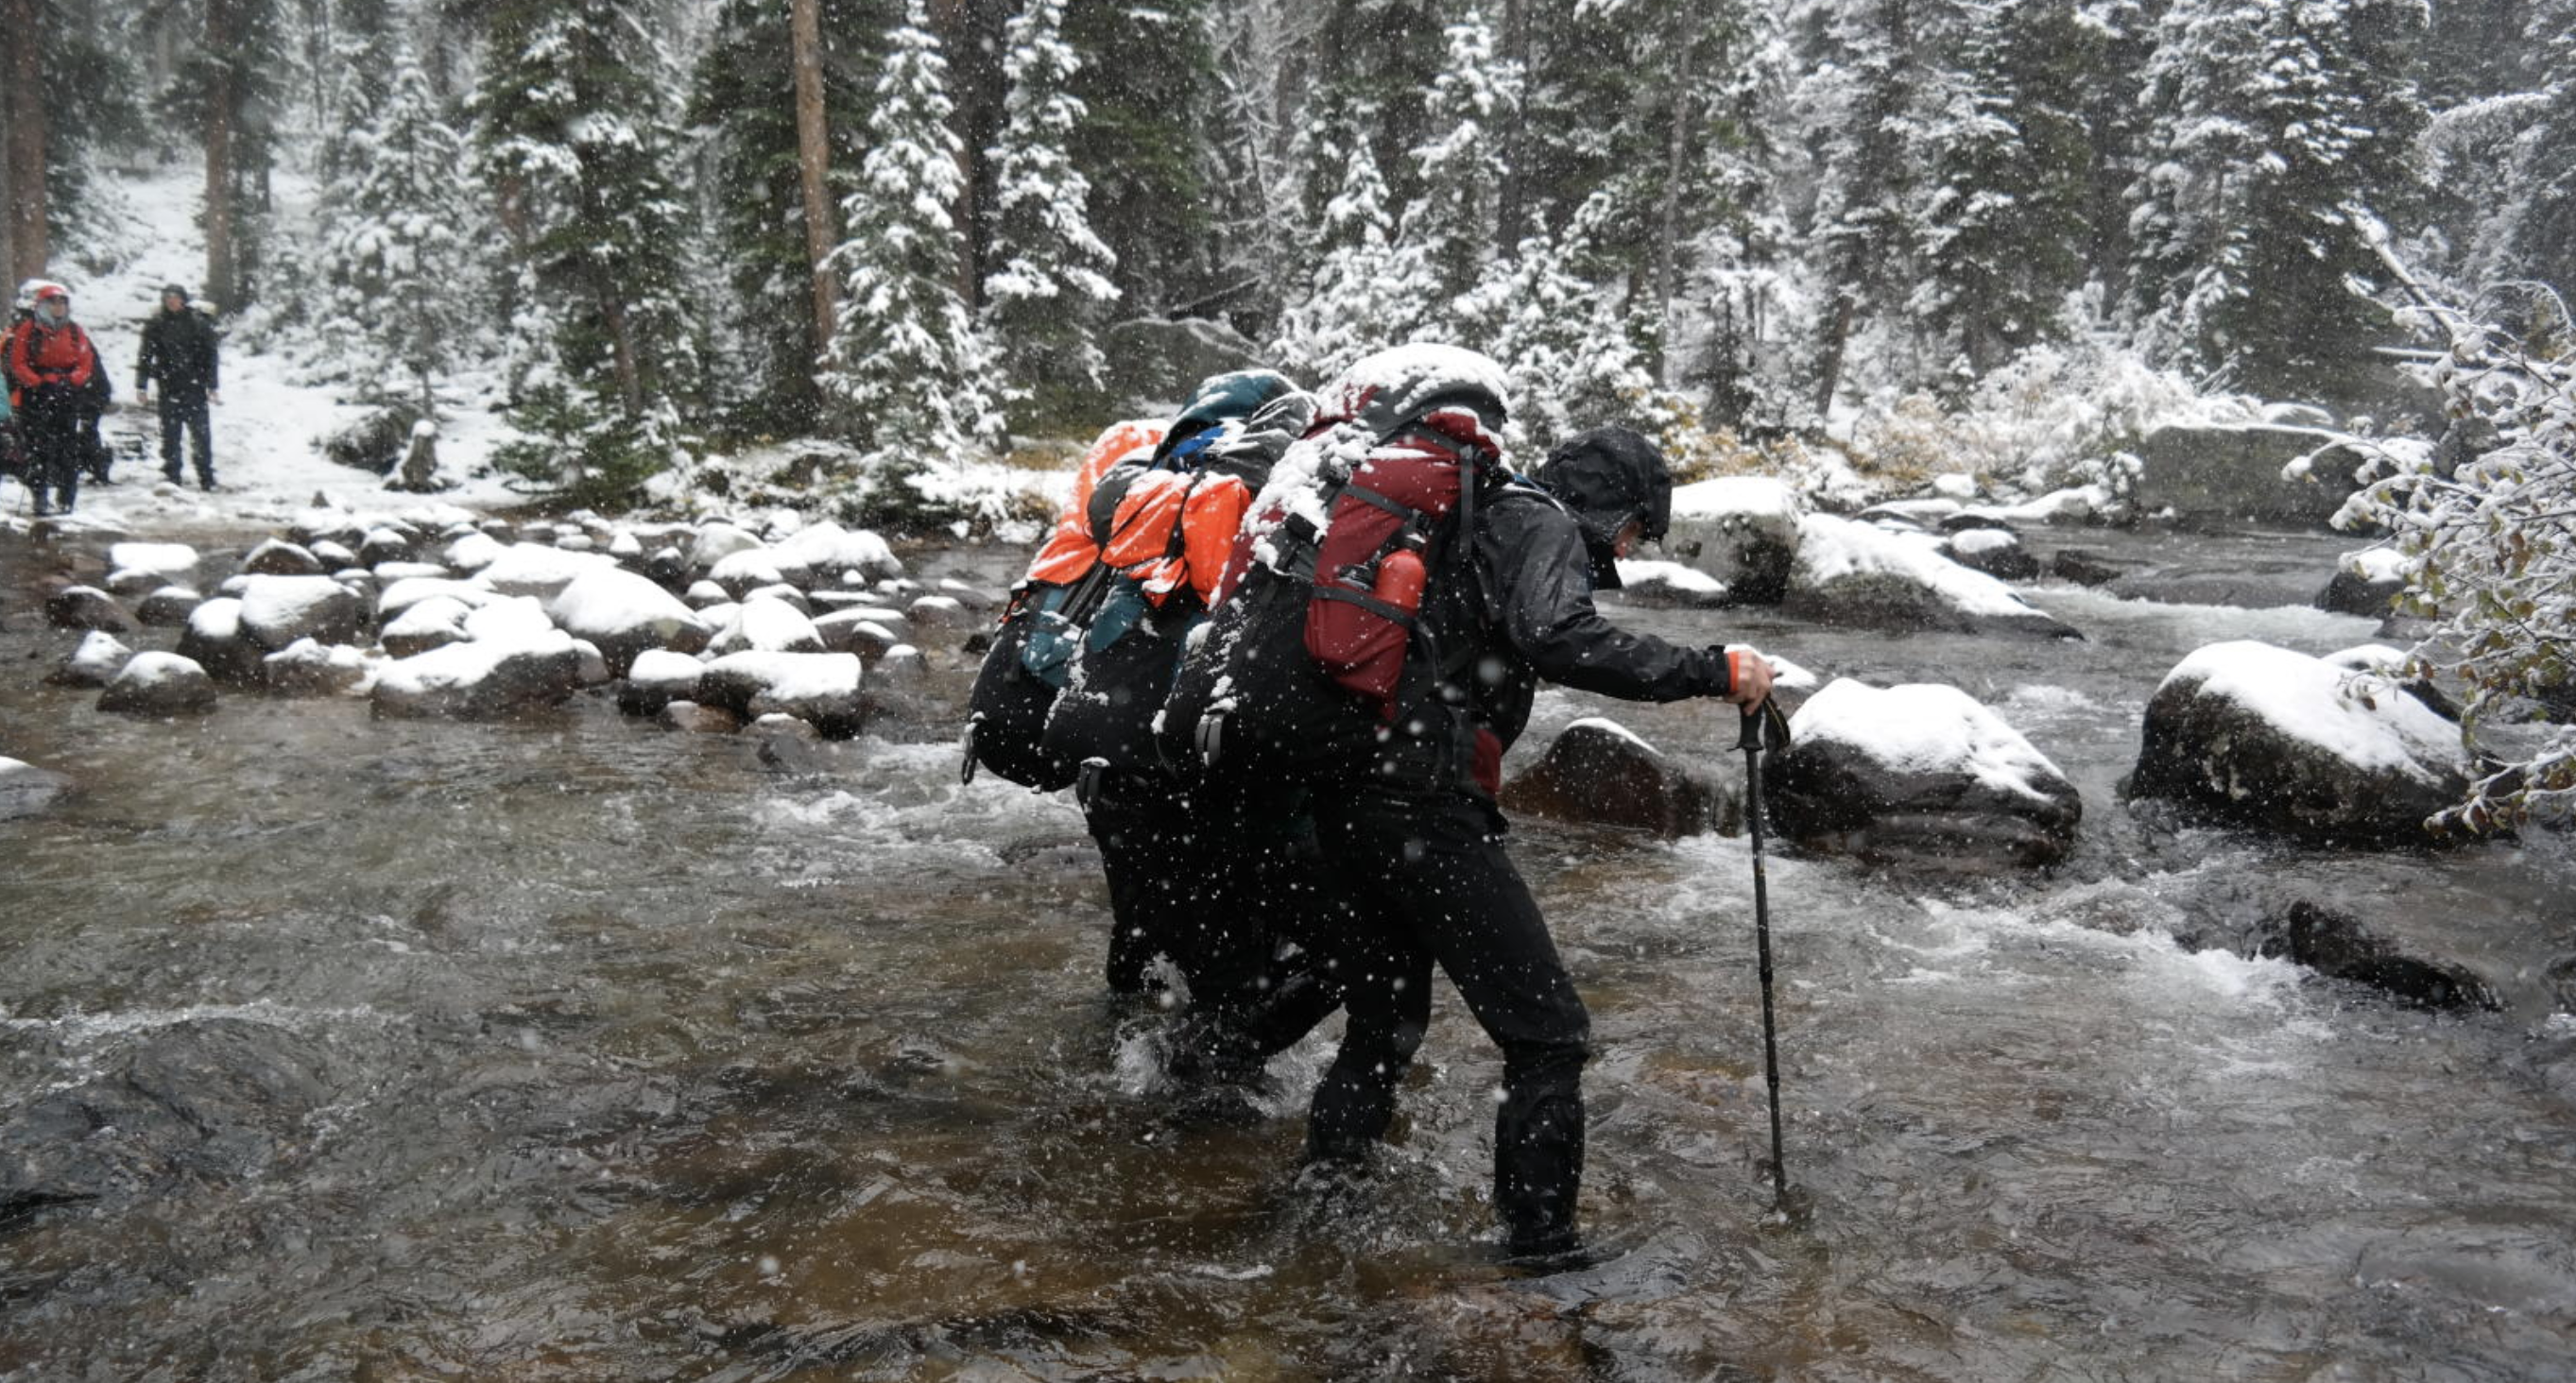 Two men with heavy backpacks cross a snowy river.